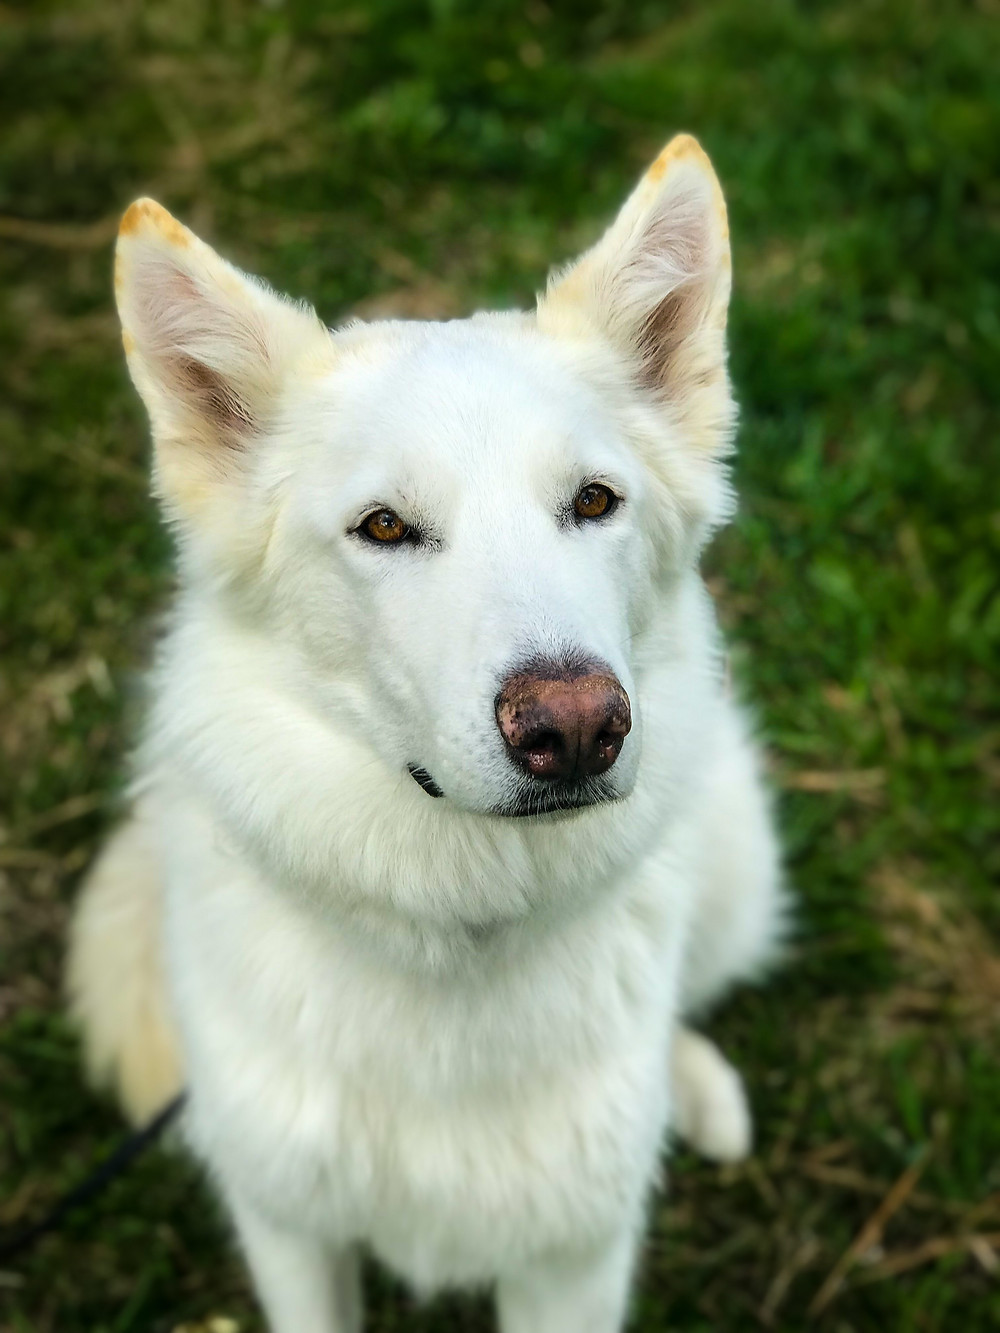 White shepherd, german shepherd, dog training missoula, dog trainer missoula